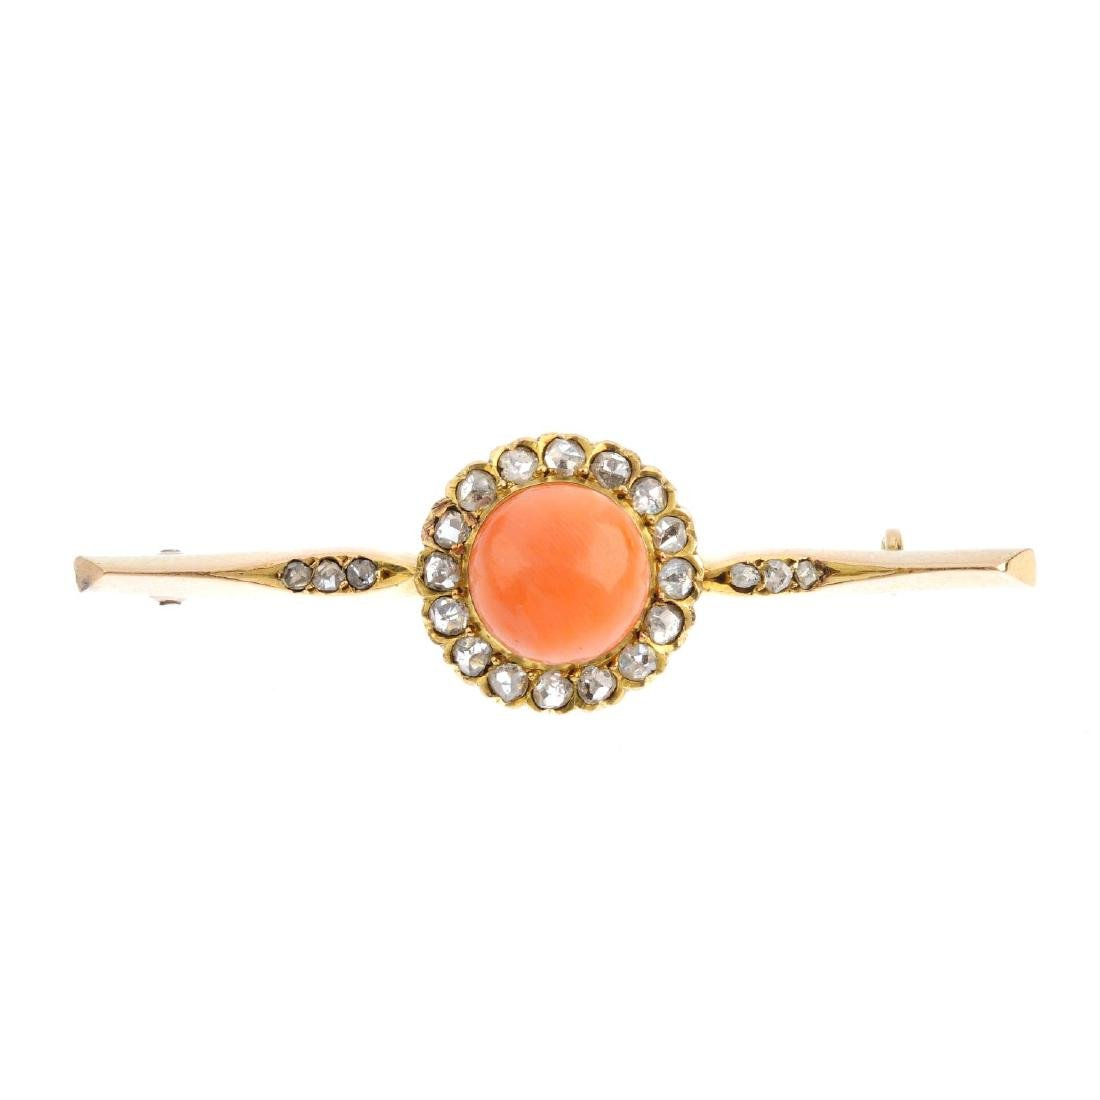 An early 20th century gold, coral and diamond bar